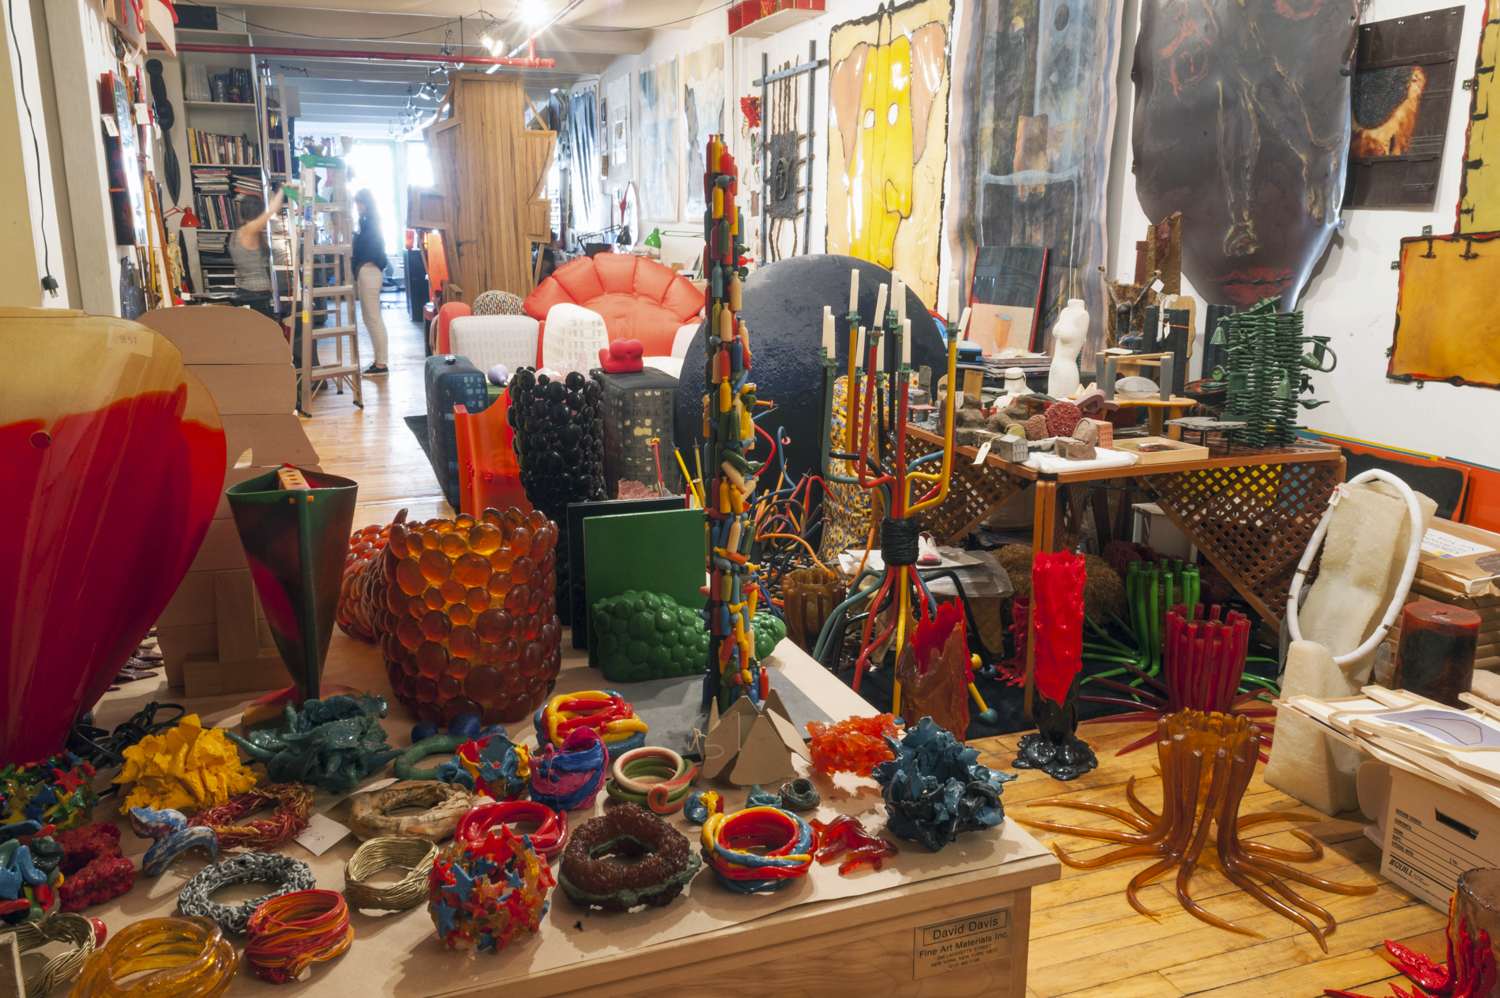 Gaetano Pesce's studio in SoHo, New York City